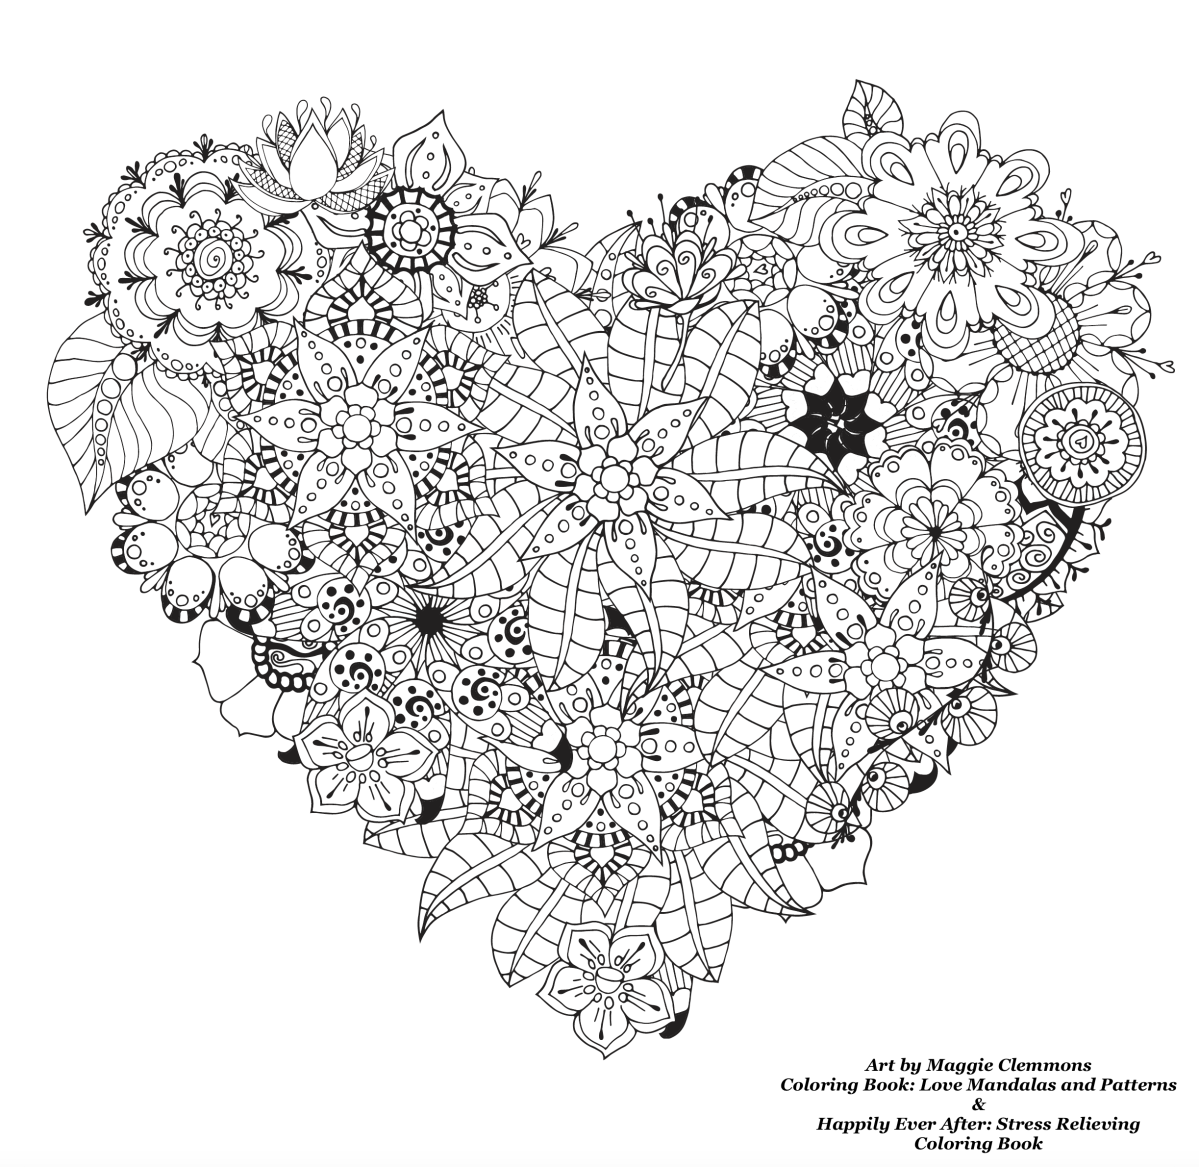 Coloring Pages For Adults: Free Coloring Pages From Maggie Clemmons